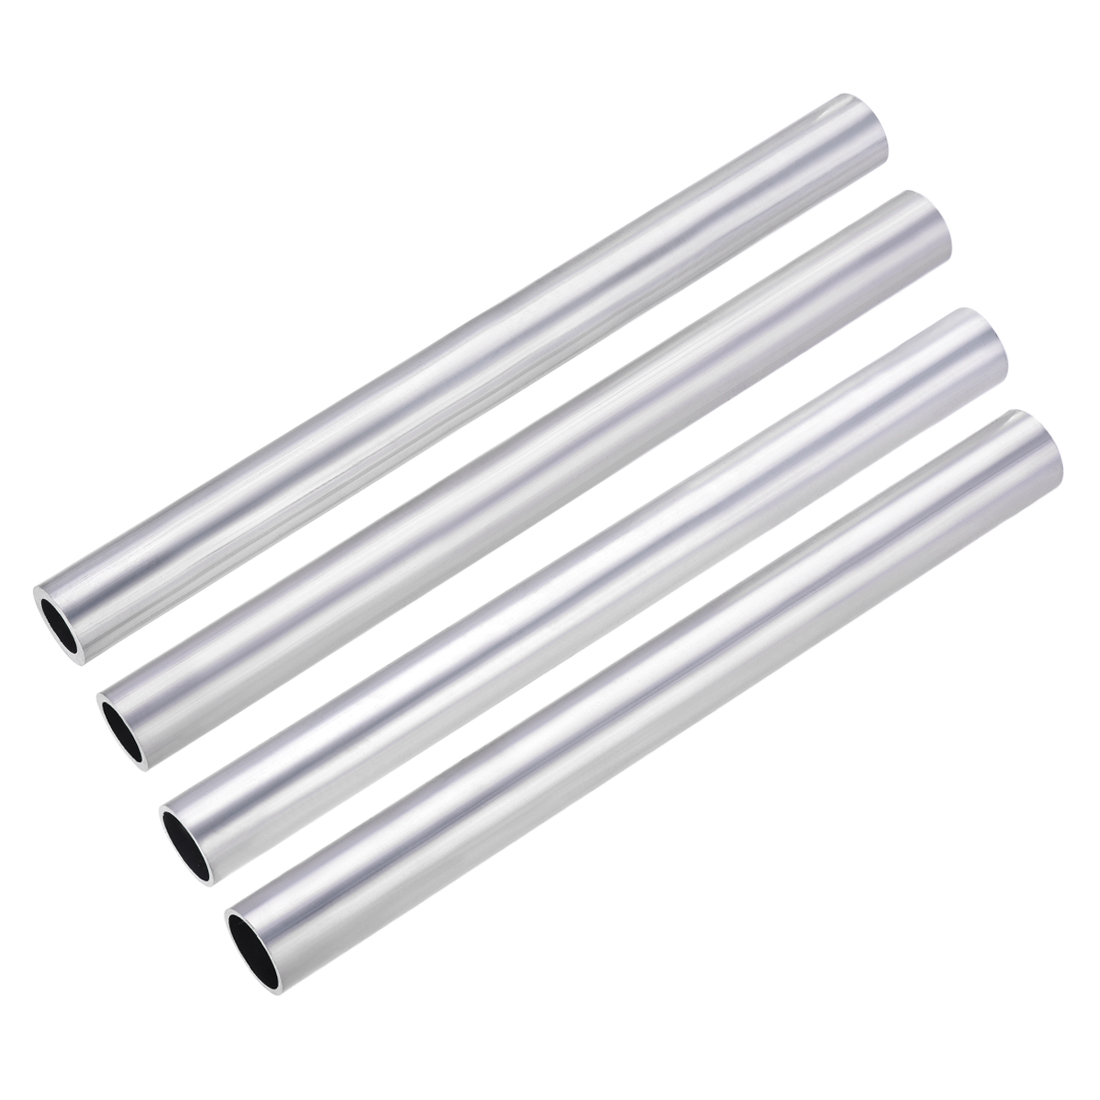 uxcell 1pc 6063 Aluminum Round Tube 21mm-30mm OD 300mm Length Seamless Straight Tubing for DIY air intake frames